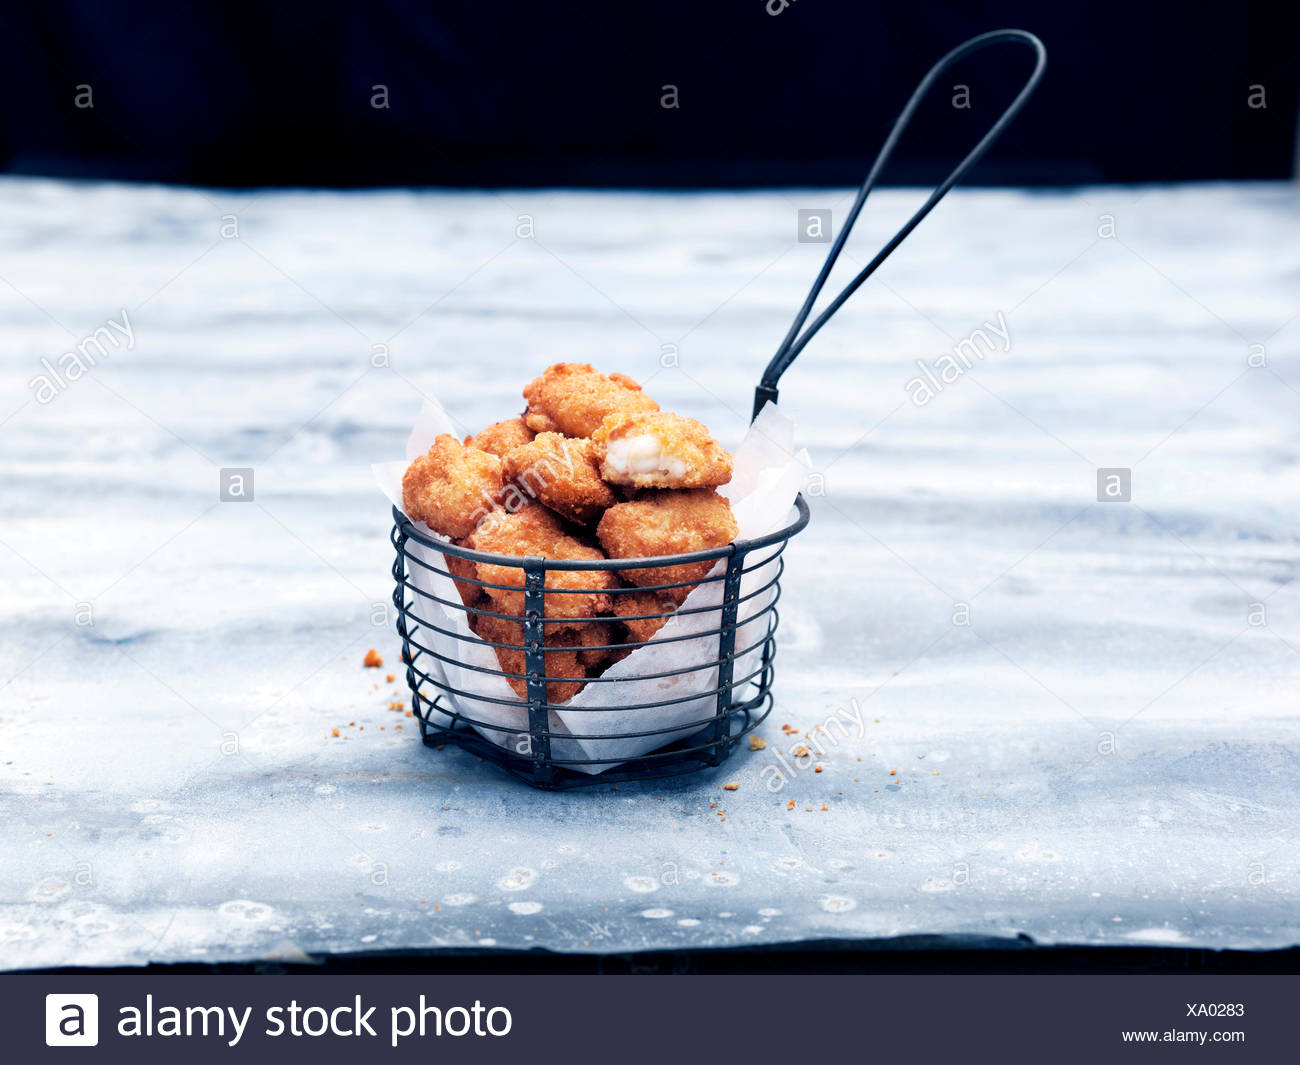 Frying basket full of breaded Scottish wholetail scampi - Stock Image